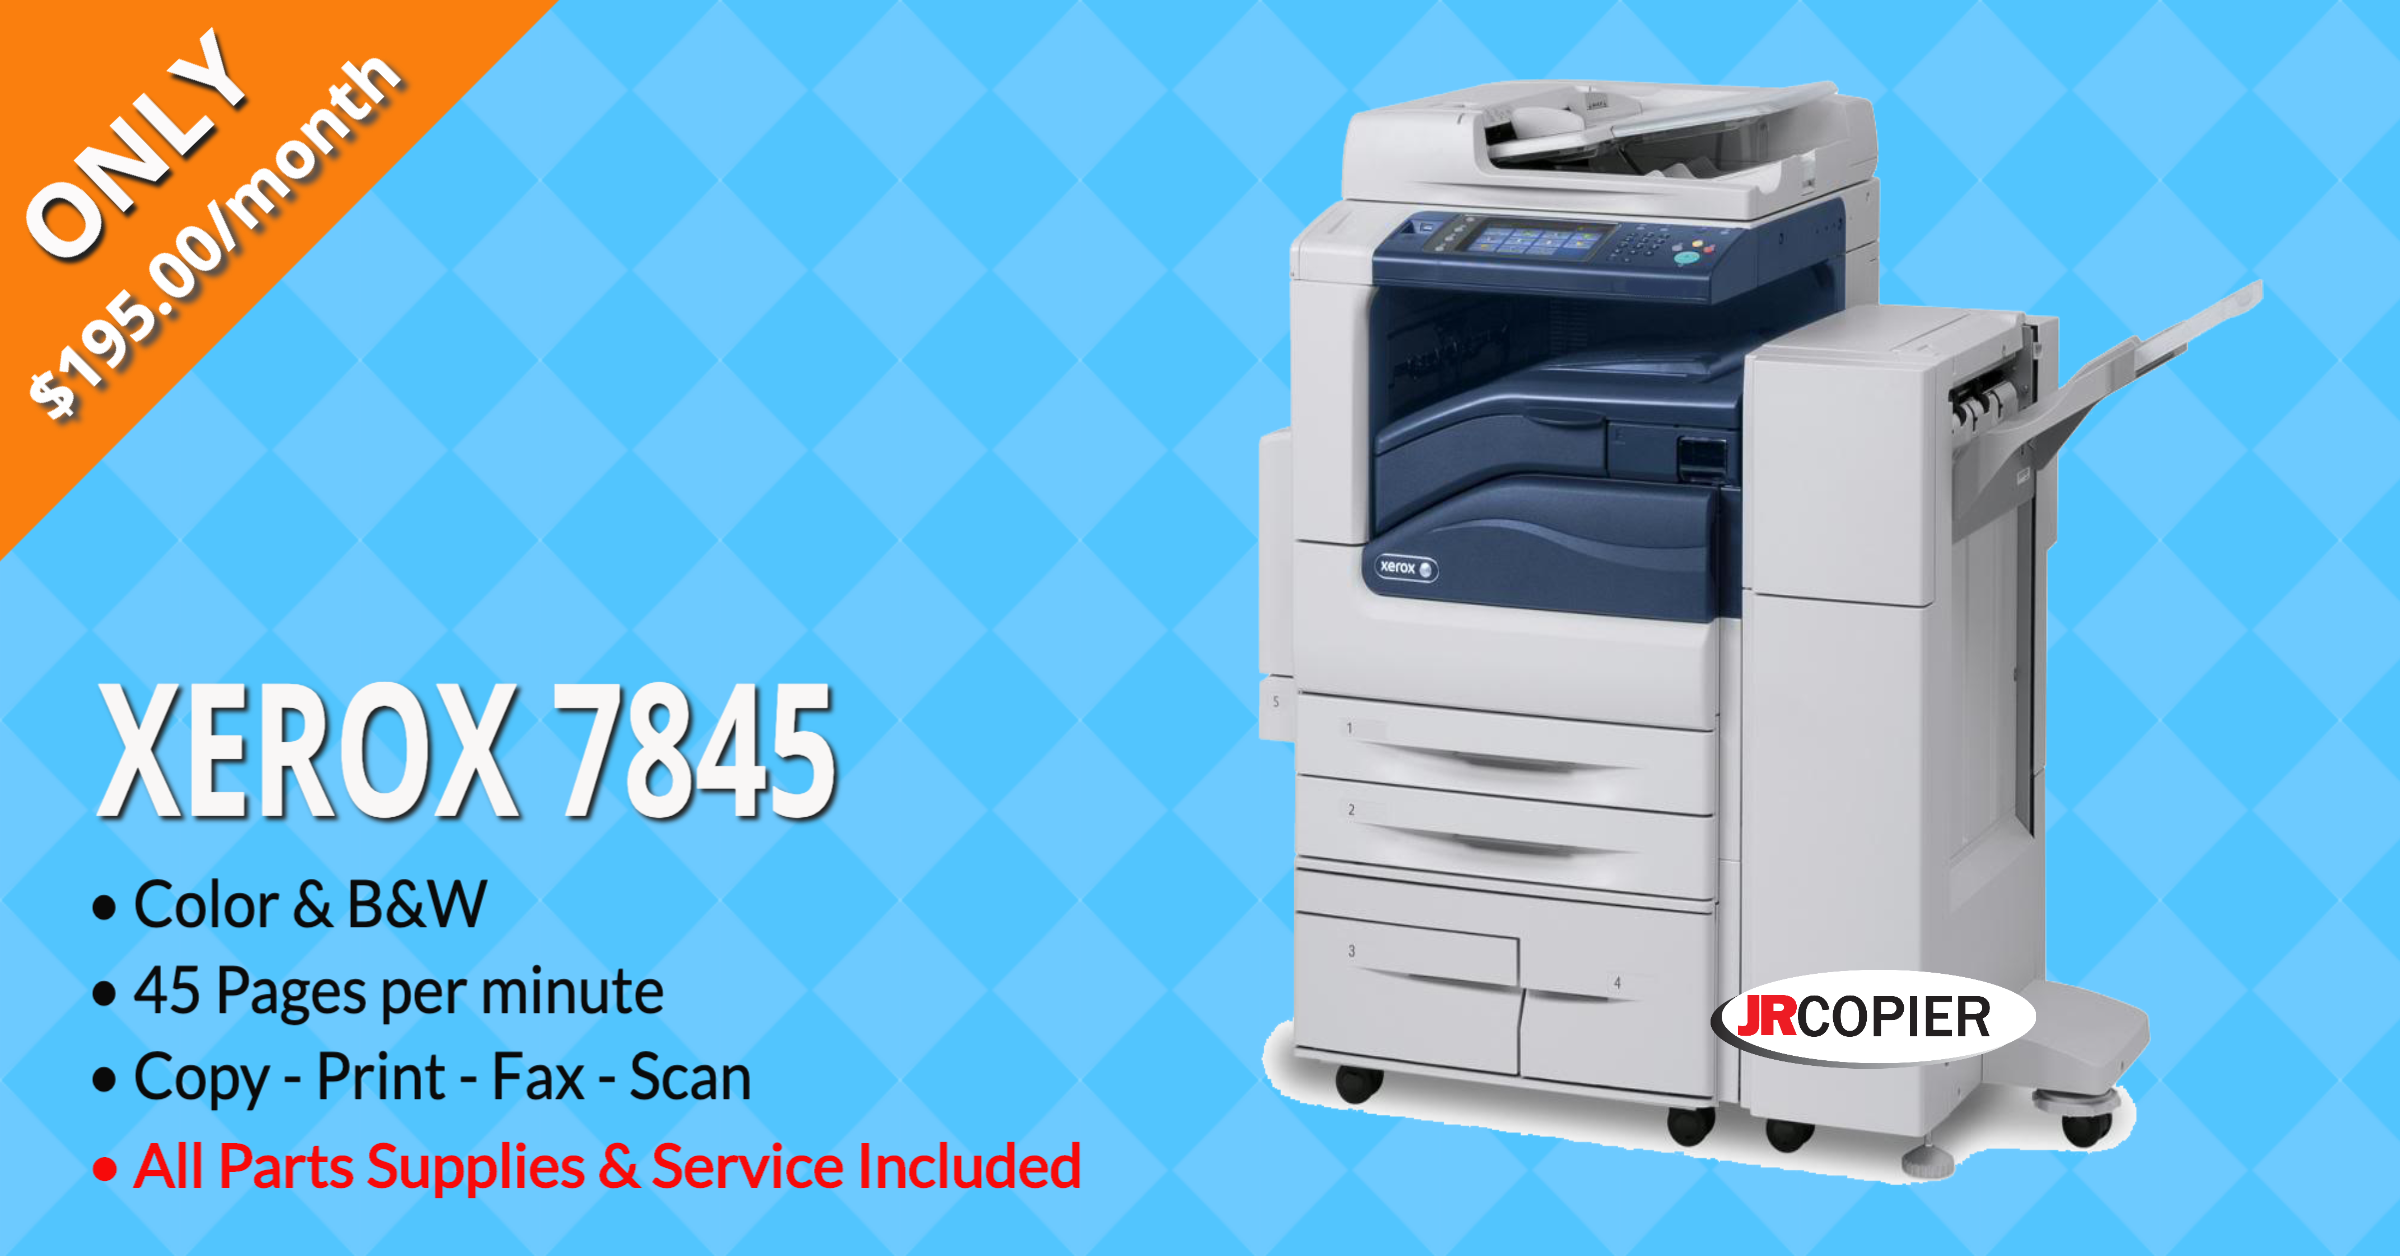 Copy Machine Rental 85250, 85251, 85252, 85253, 85254, 85255, 85256, 85257, 85258, 85259, 85260, 85261, 85262, 85266, 85267, 85268, 85271, 85331